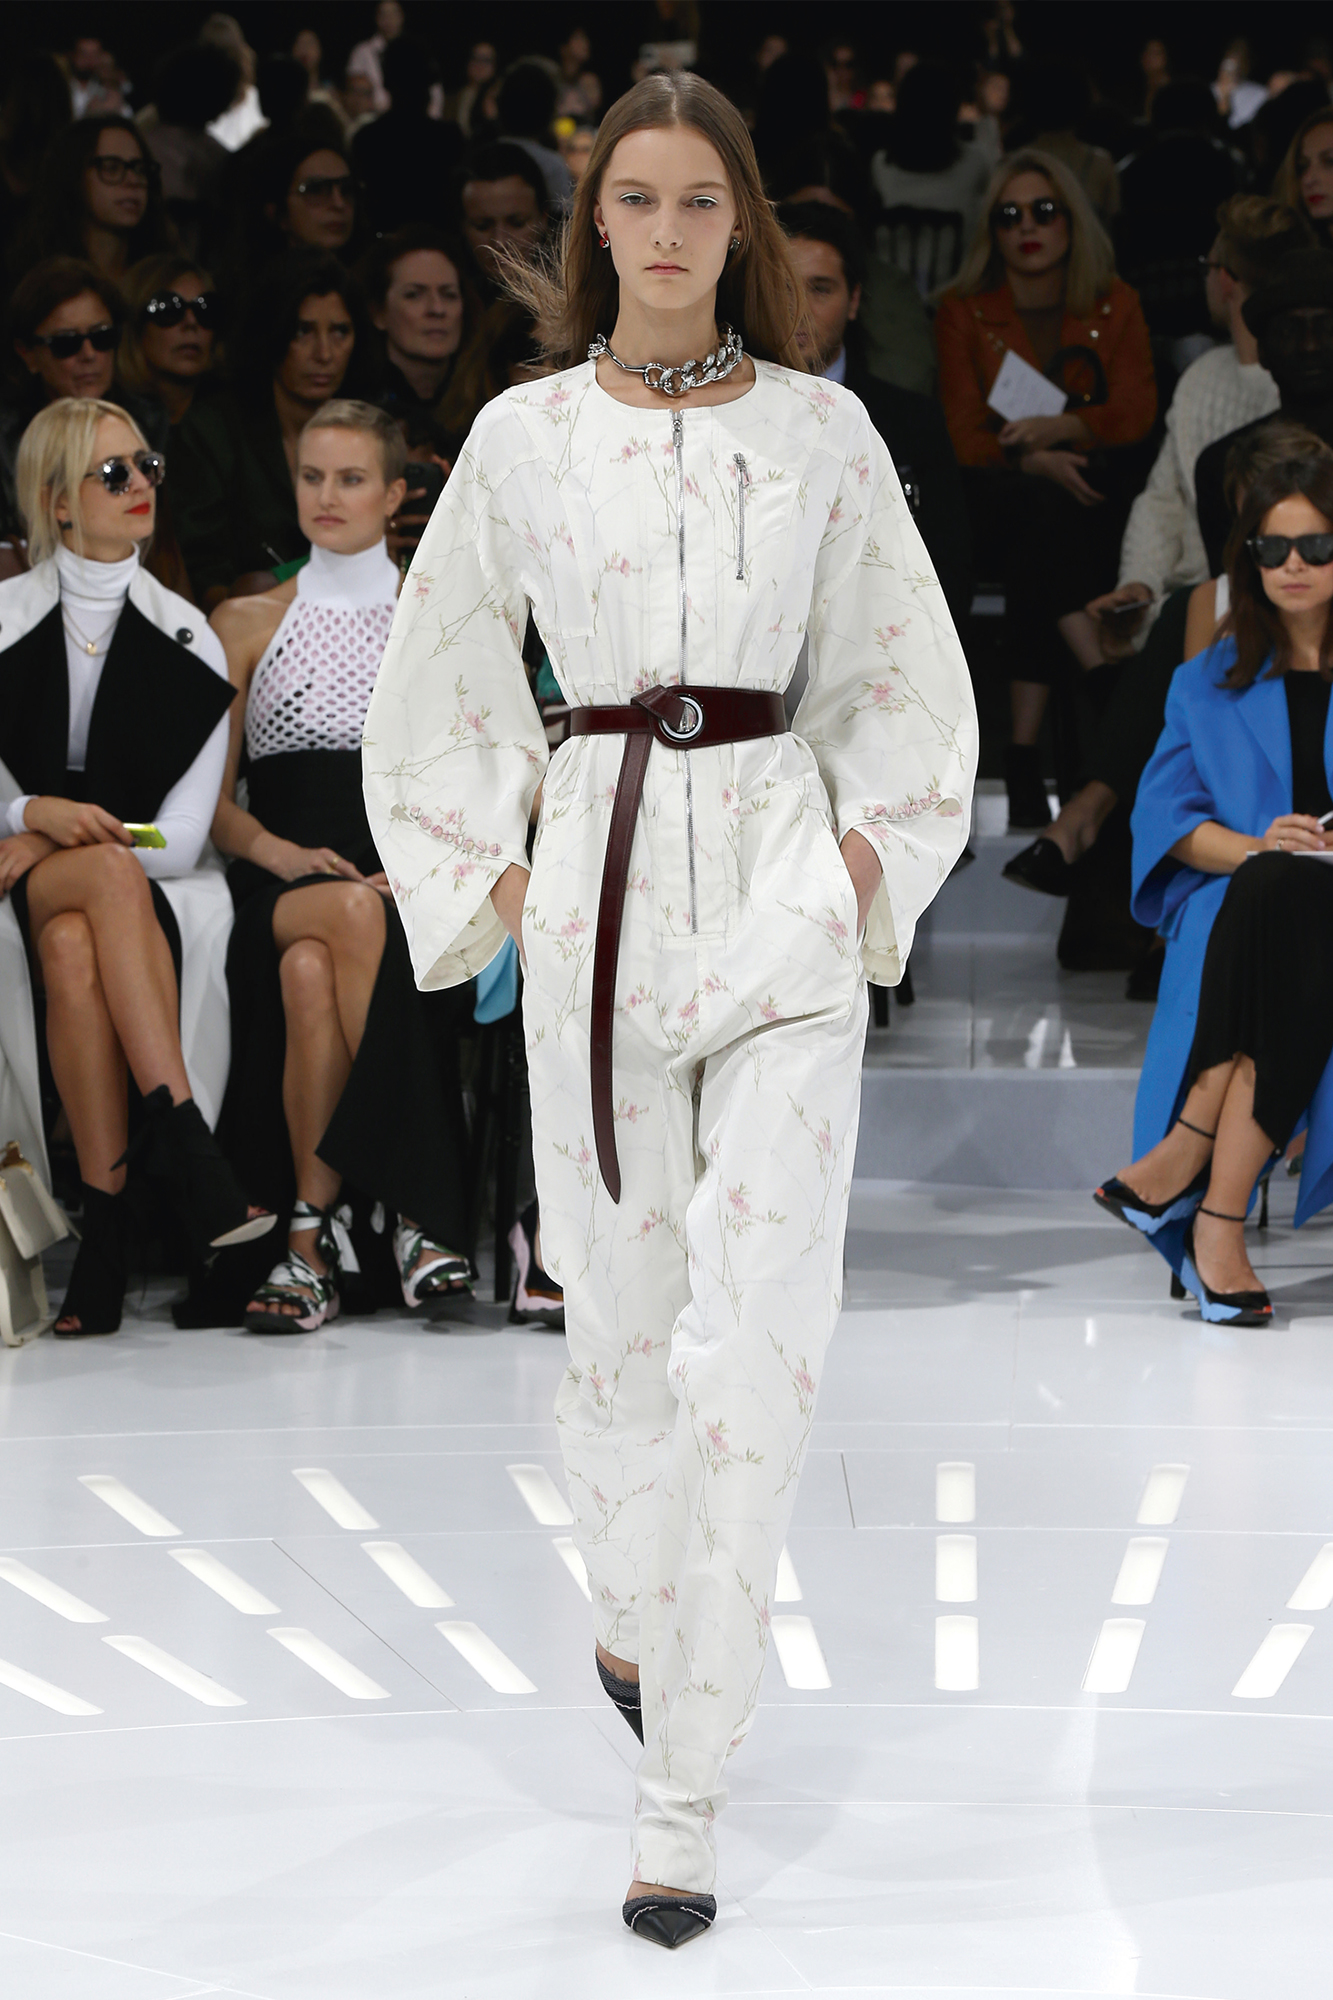 Christian Dior Haute Couture Spring-Summer Ready To Wear Dresses & Accessories Collection 2015-16 (19)